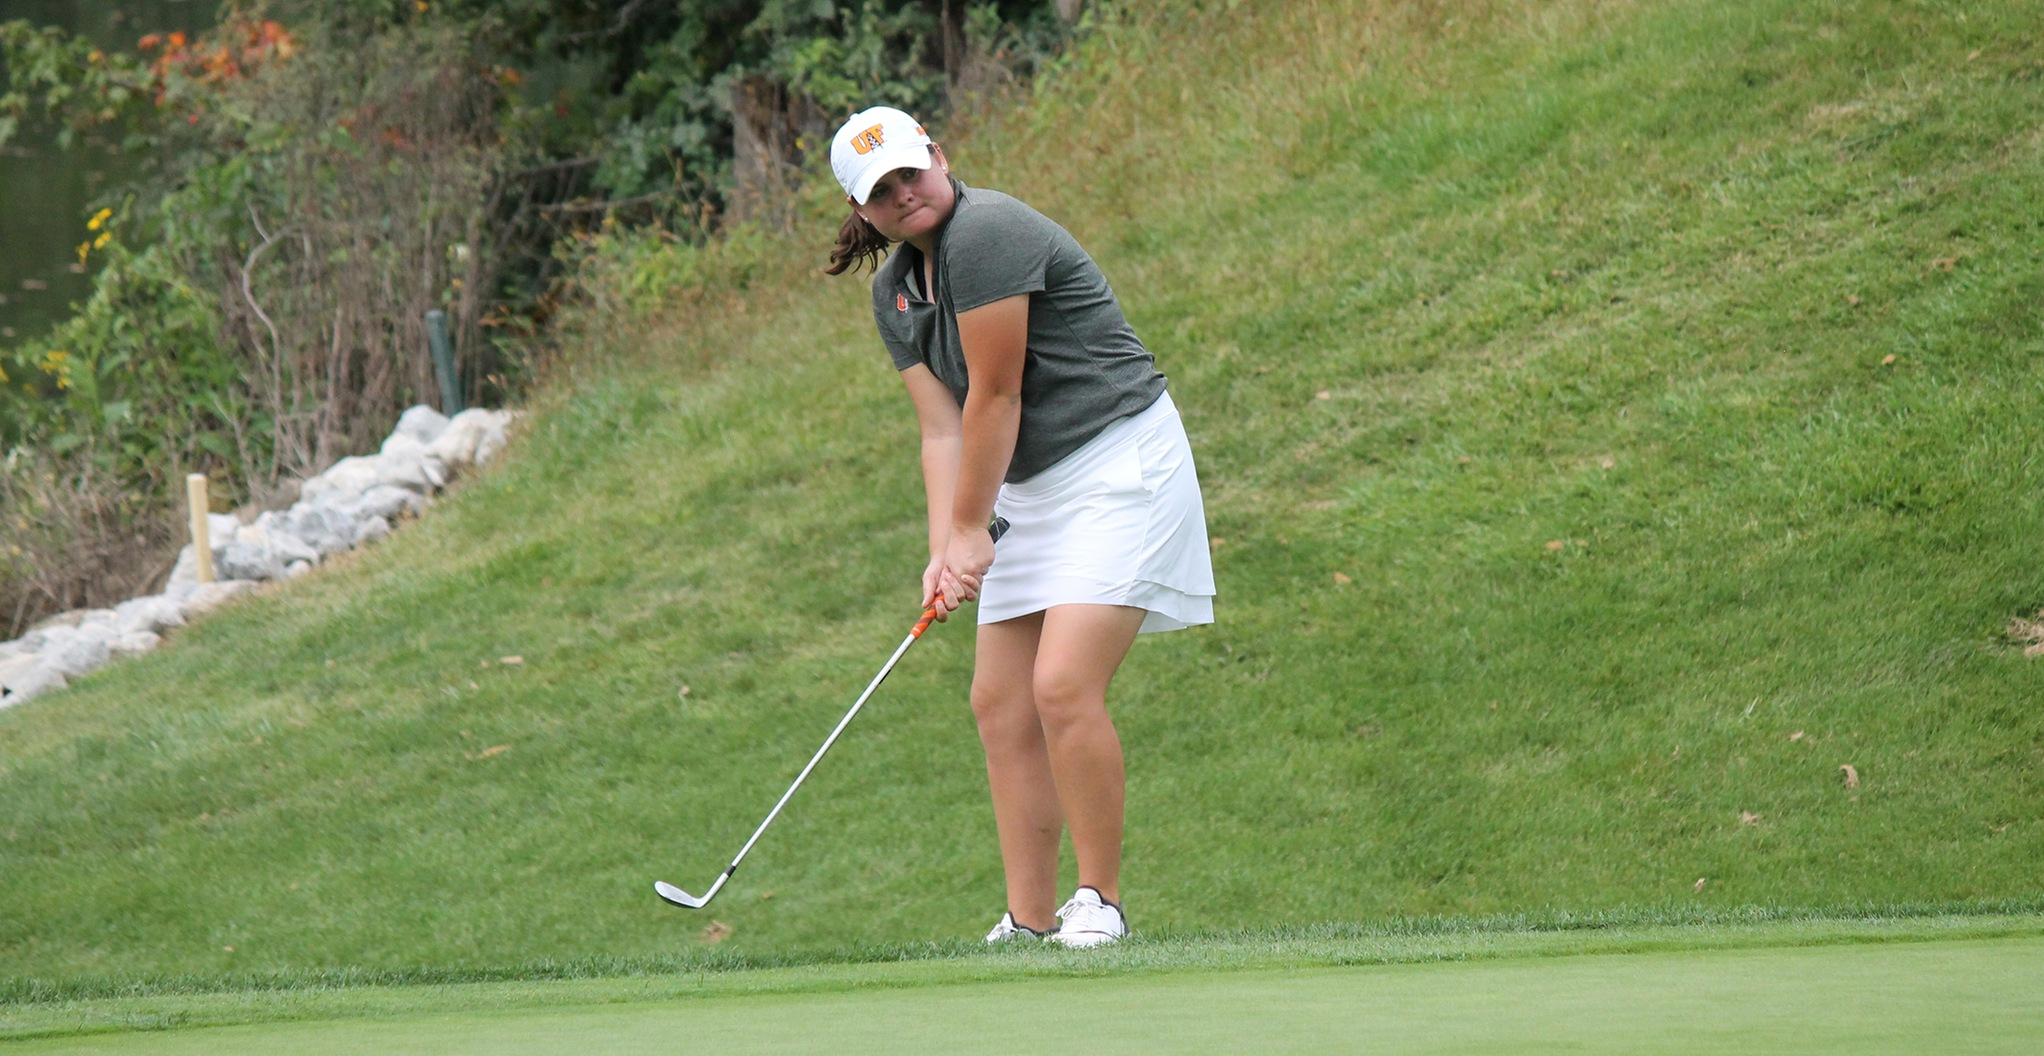 Wipper and Oilers Win Cav Classic